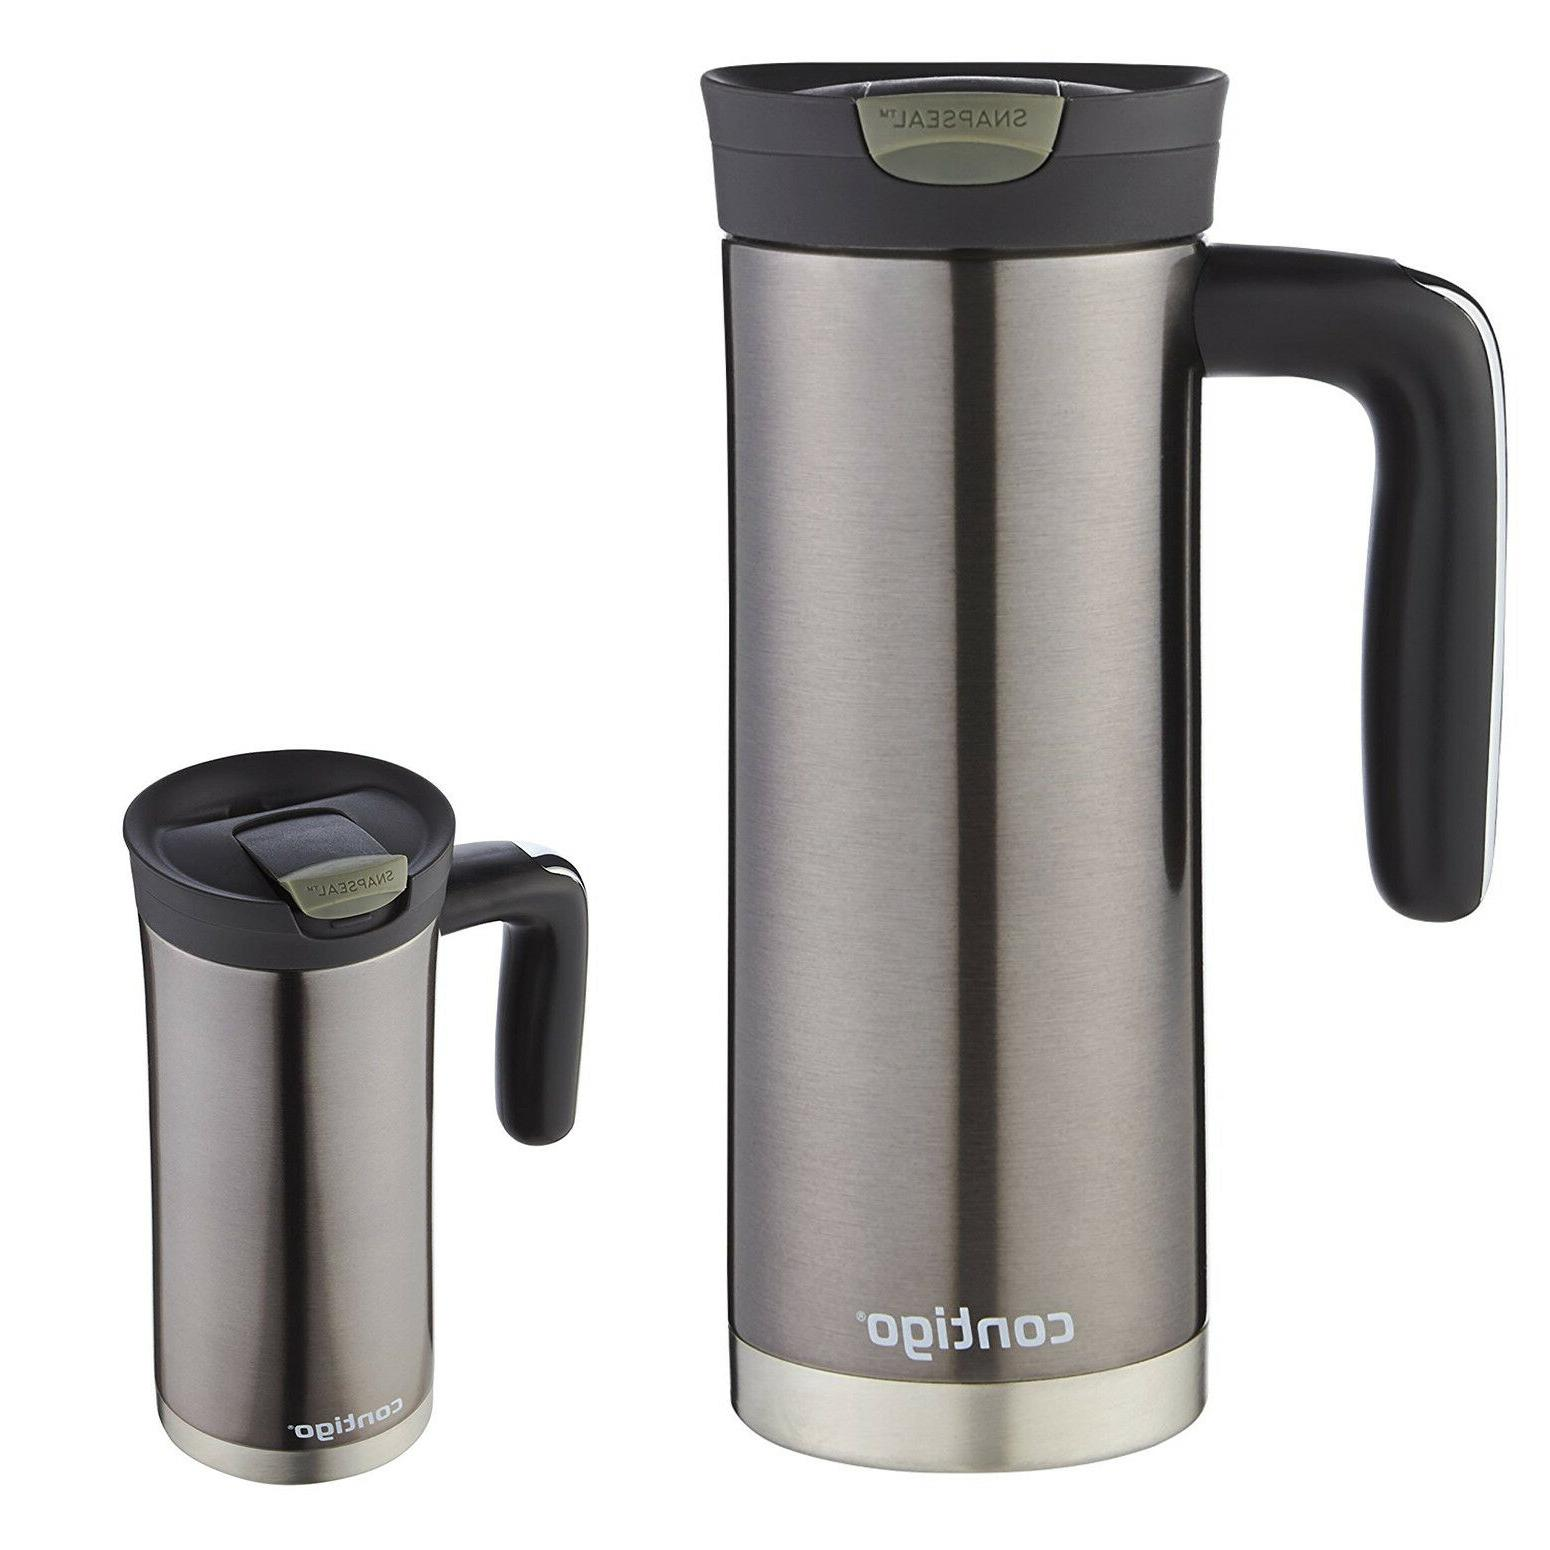 Contigo 20 oz. Superior Snap Seal Stainless Steel Tumbler -